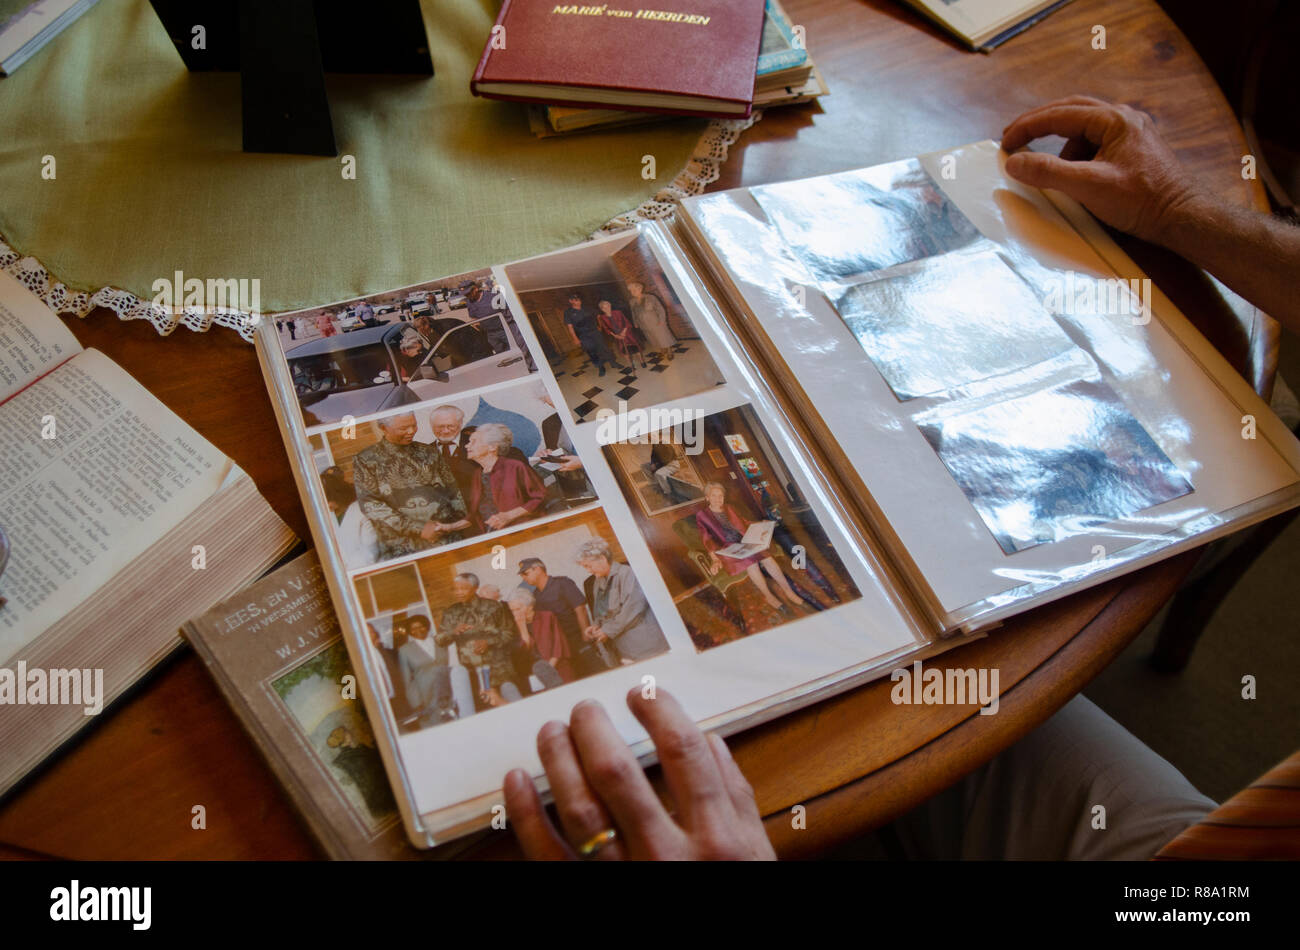 Carel Boshoff (junior) the grandson of H.F. Verwoerd, the mastermind of Apartheid, is looking at a photo album of a 1995 visit from South African President Nelson Mandela, in Orania, the Northern Cape, Friday, December 12, 2013. Photo: Eva-Lotta Jansson - Stock Image